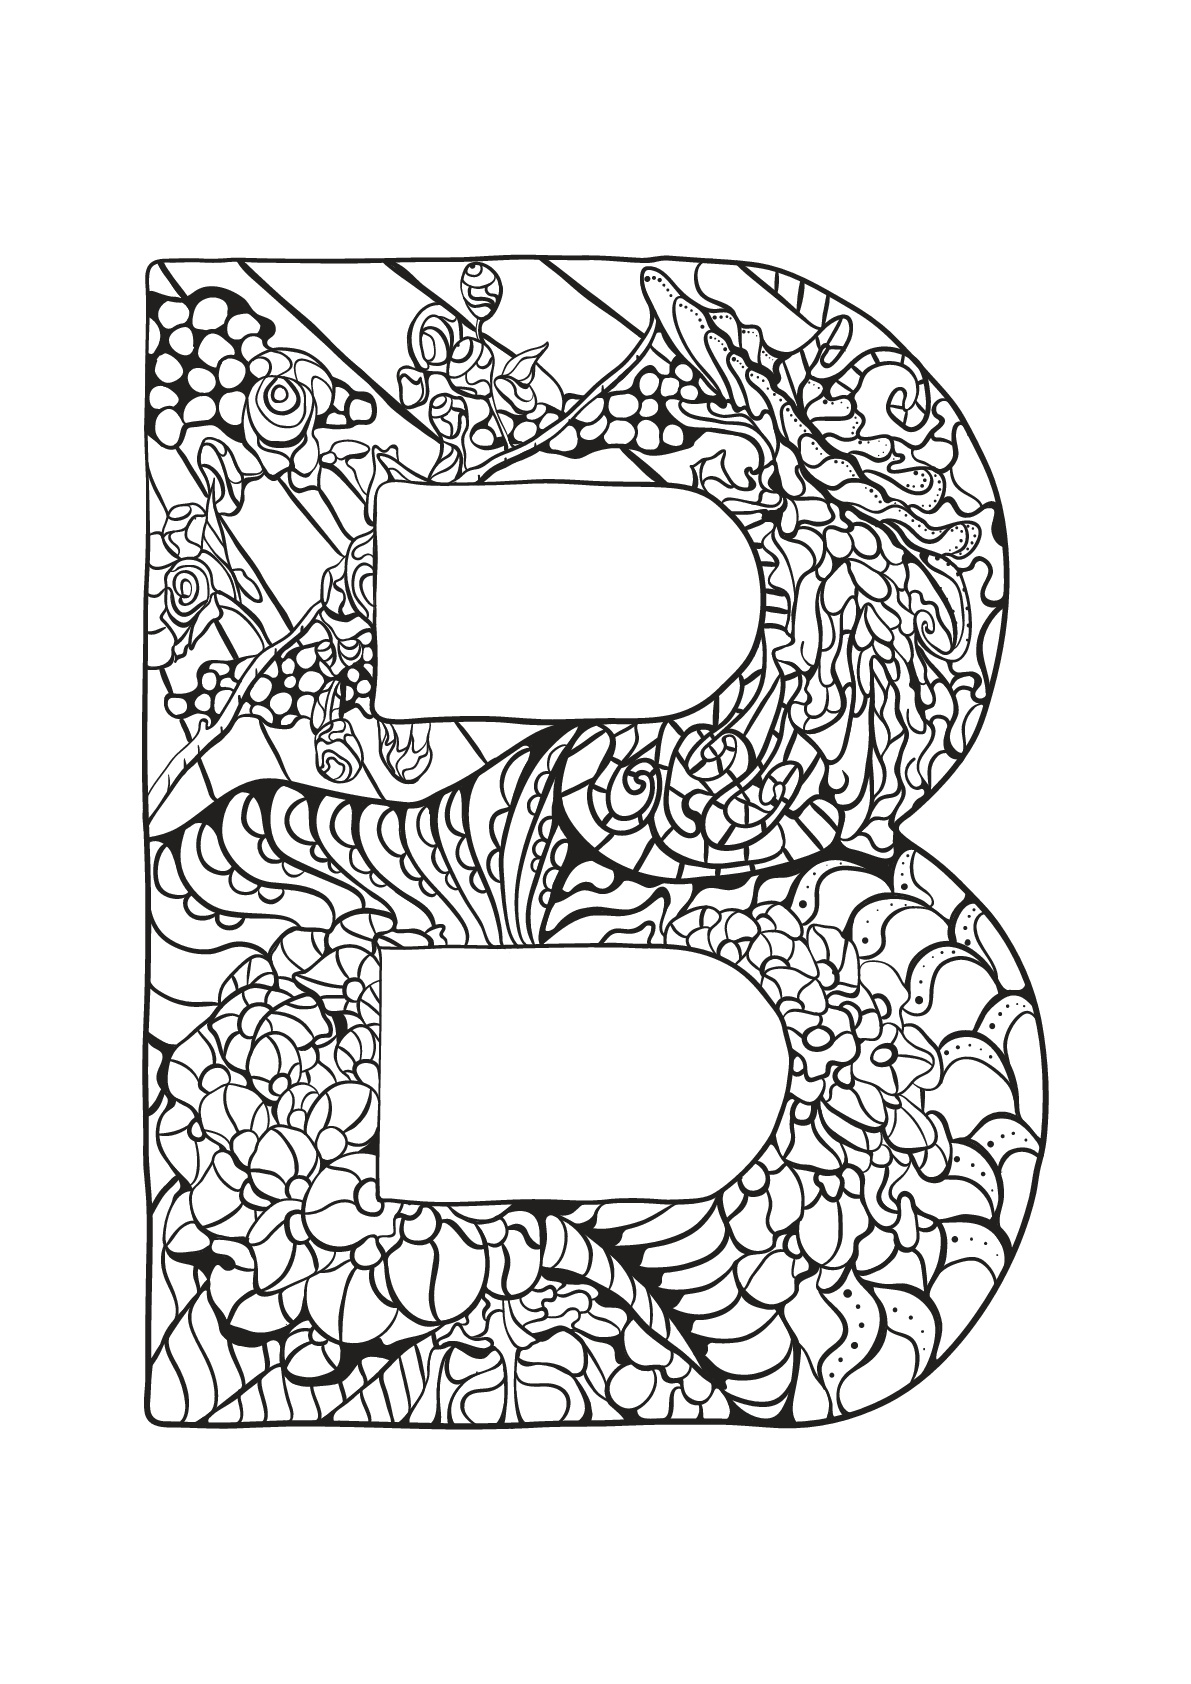 alphabet coloring pages download - photo#23